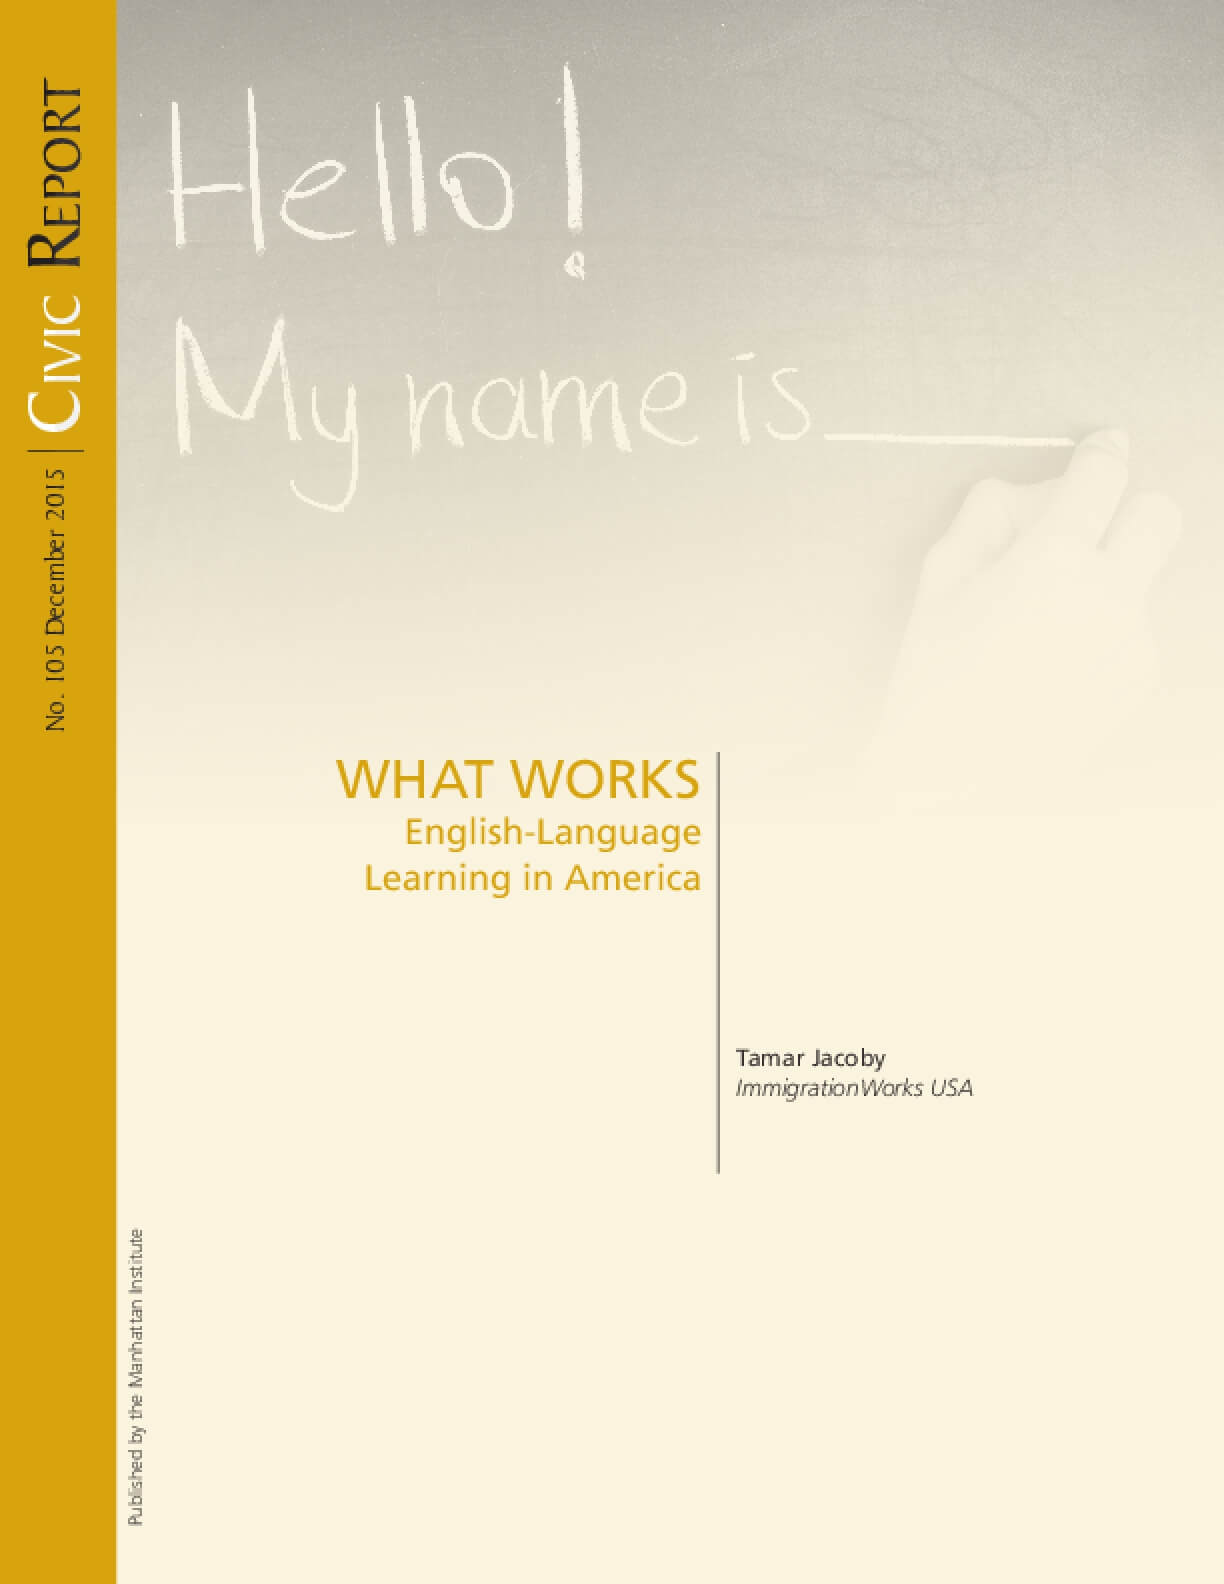 What Works: English-Language Learning in America